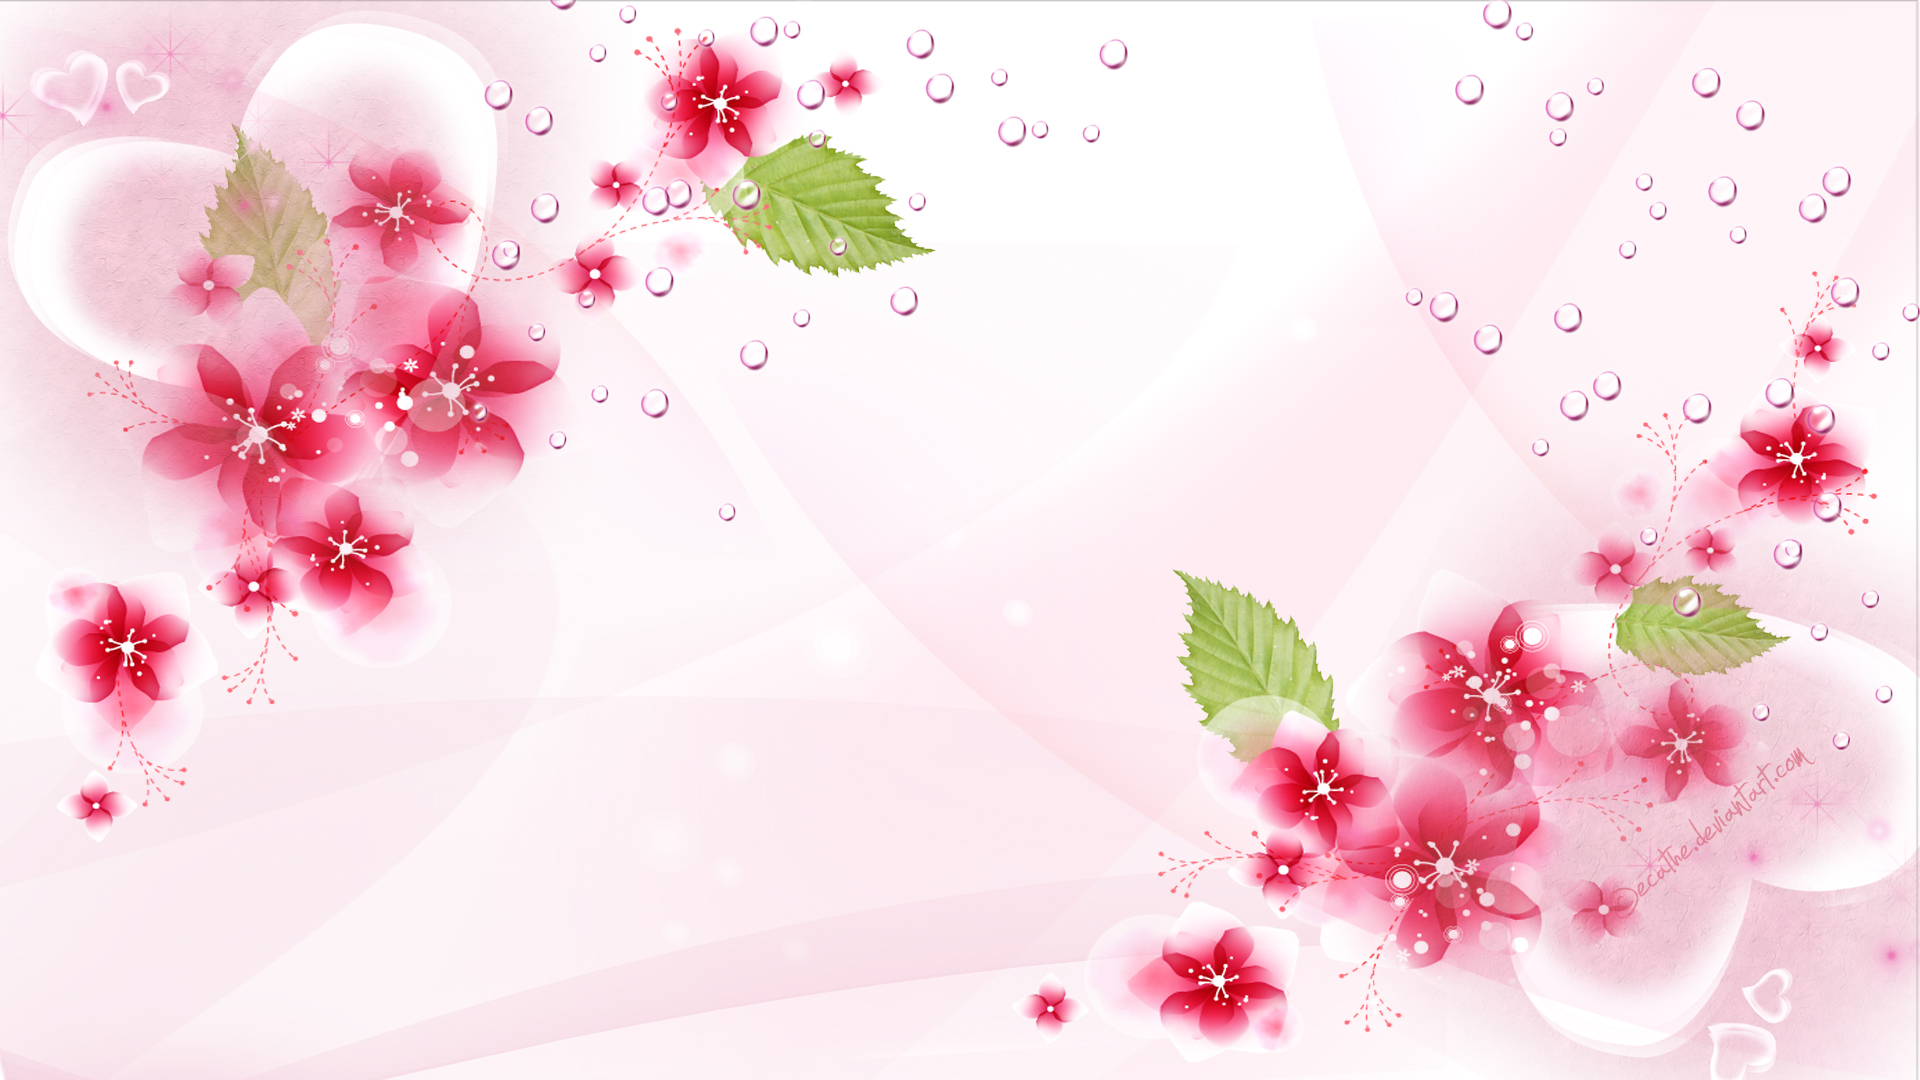 rose and vine wallpaper - photo #41